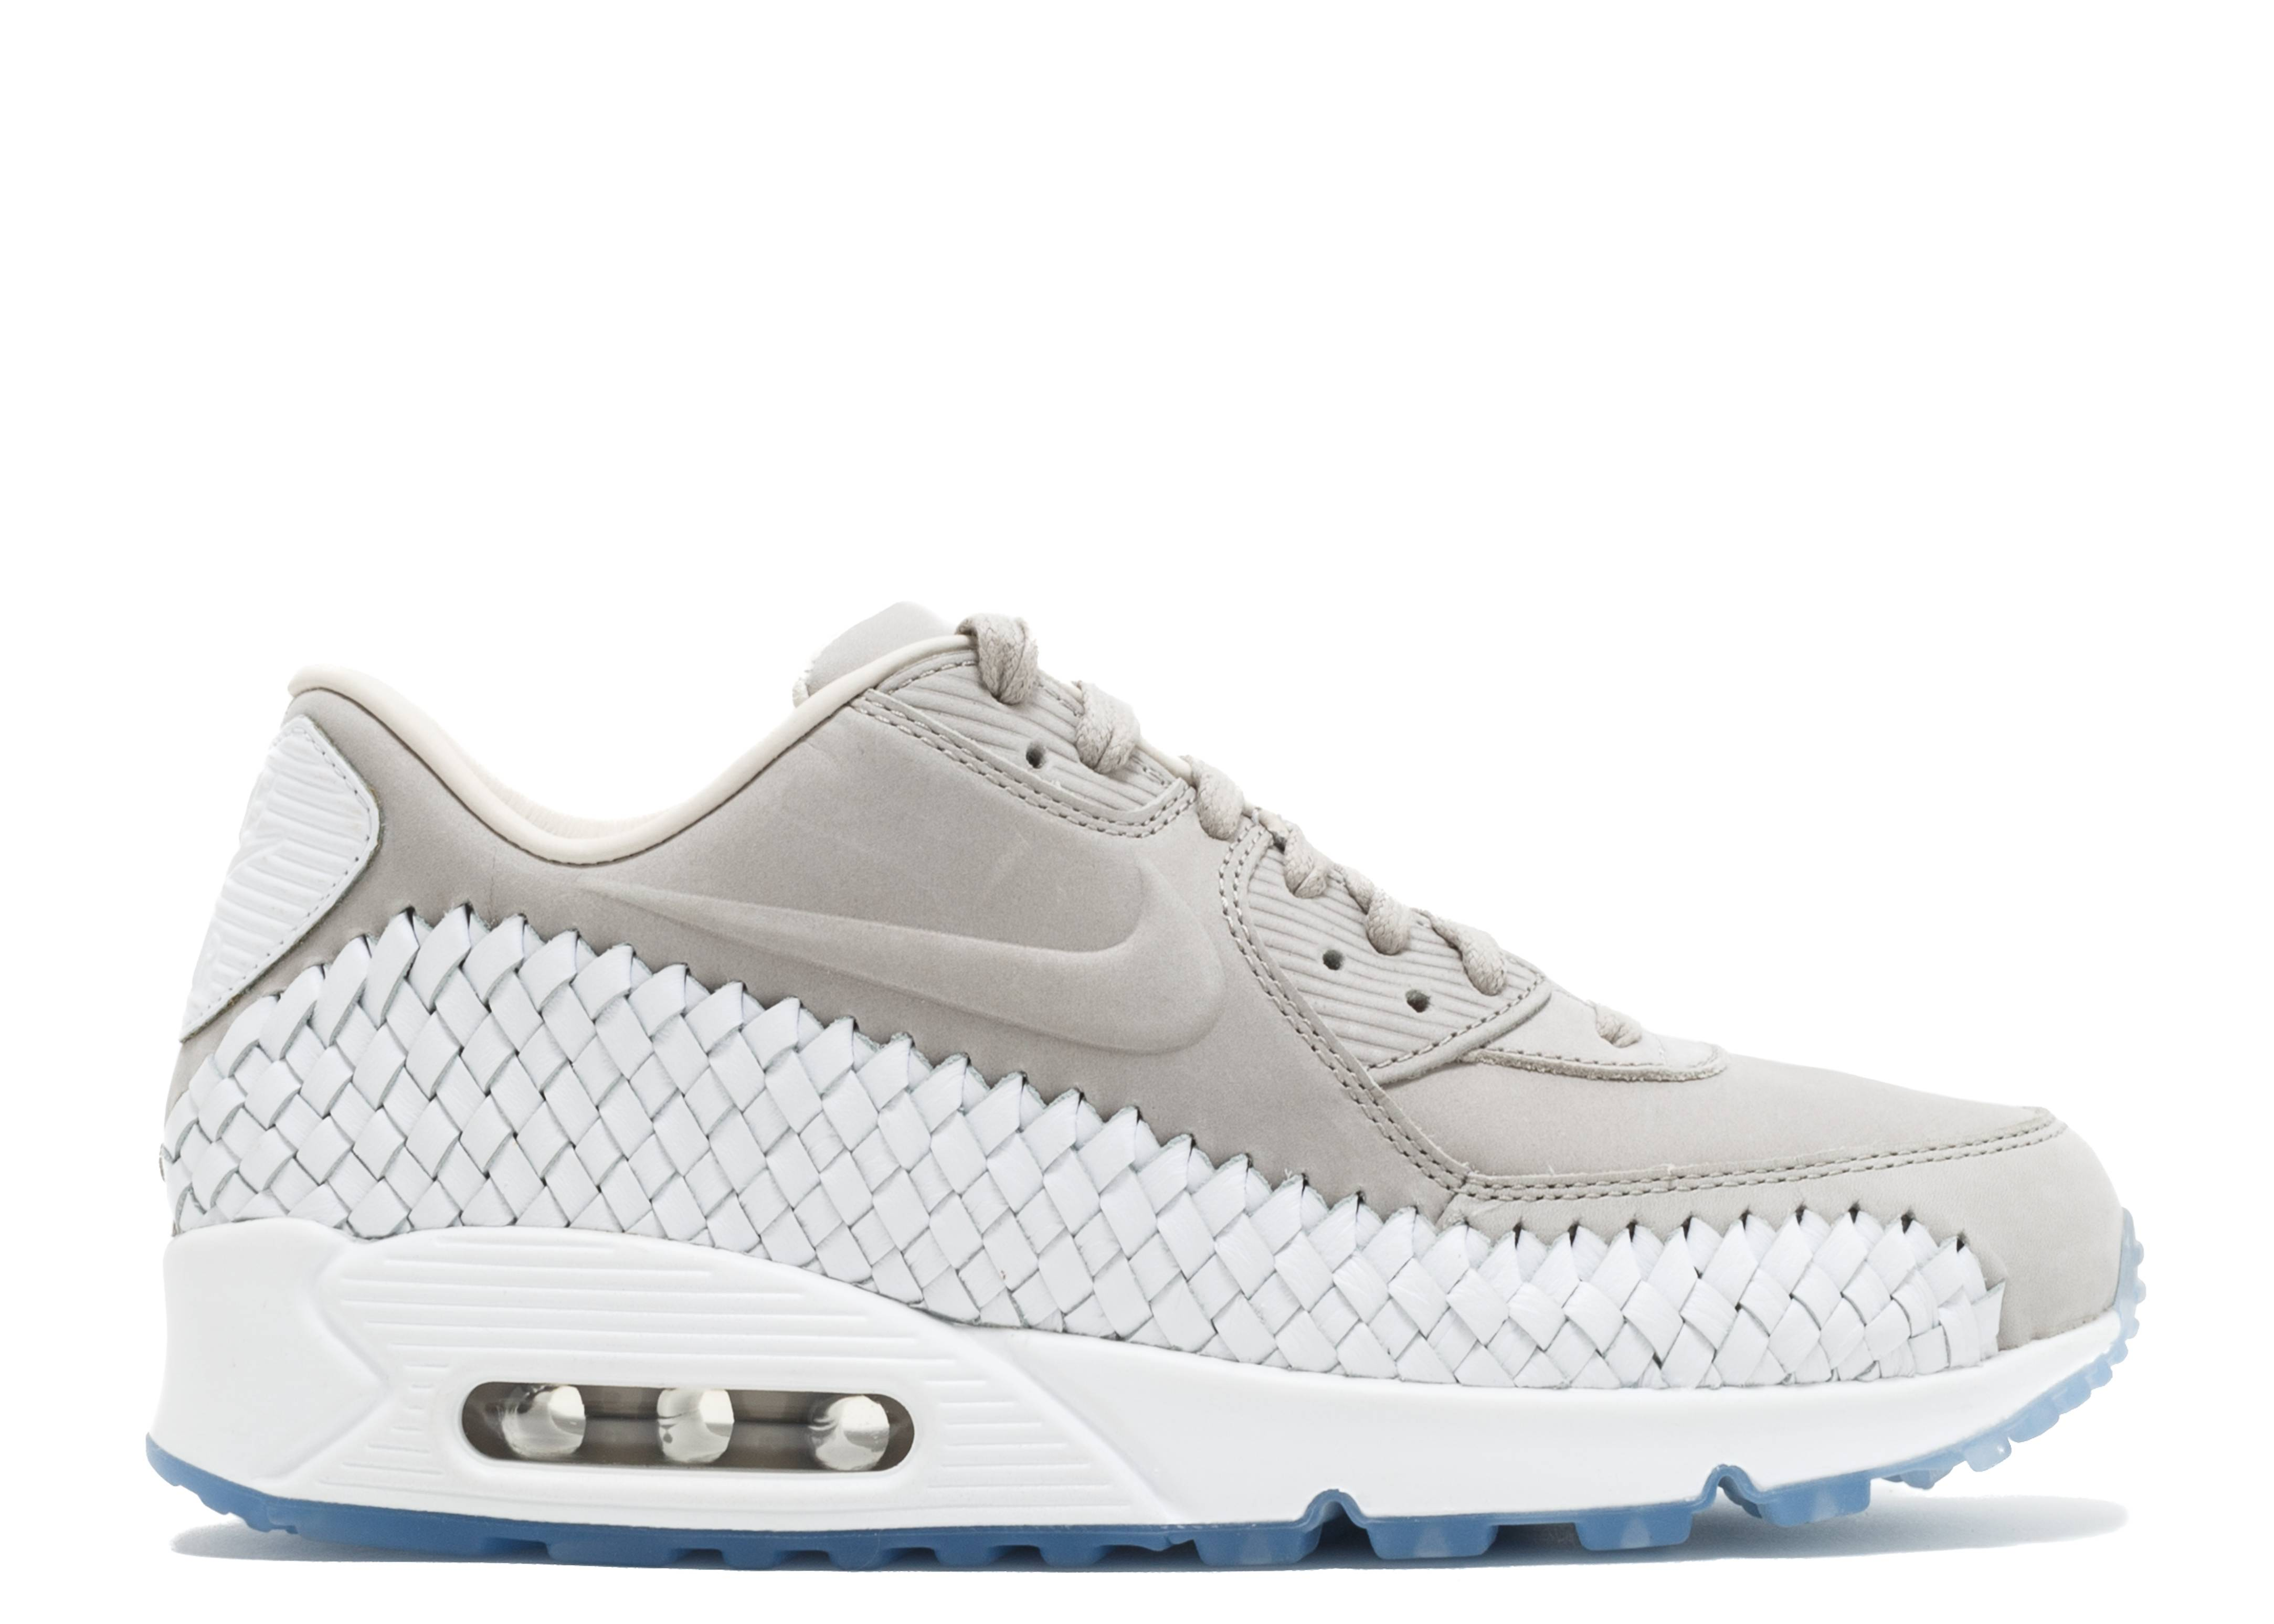 new arrival dd93f bd7b2 Air Max 90 Woven - Nike - 833129 005 - lt iron ore lt iron ore-white    Flight Club